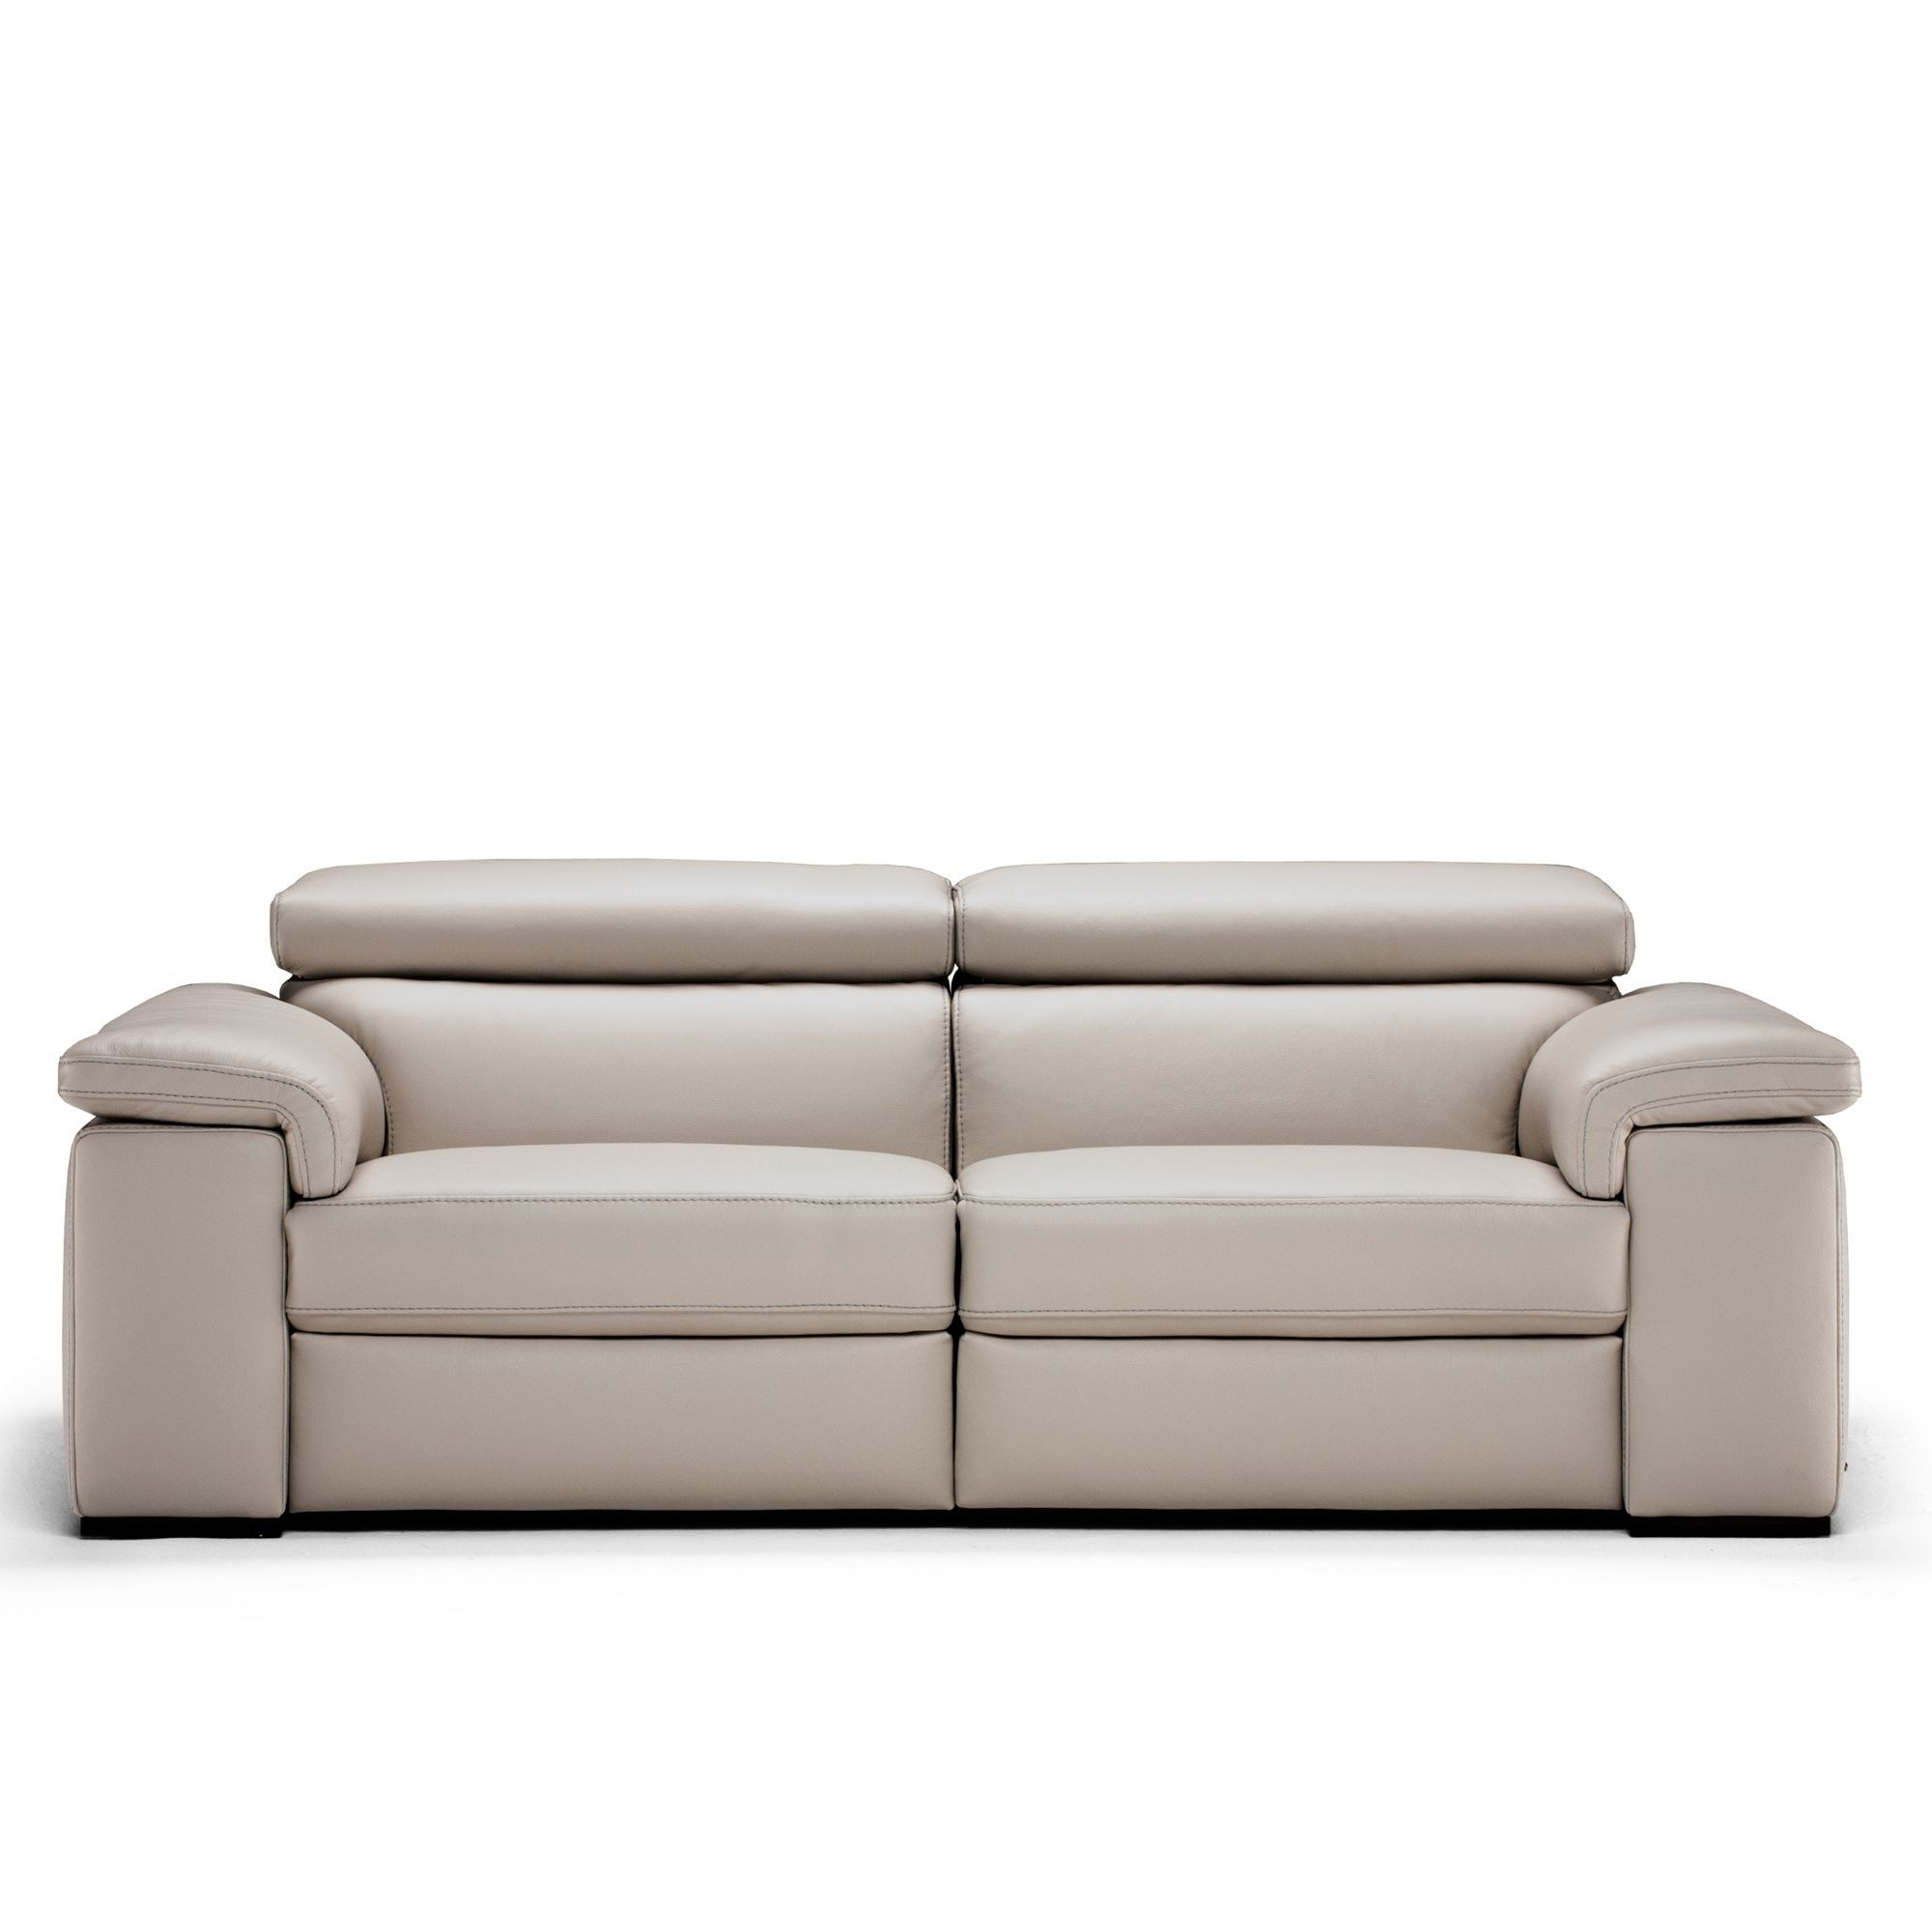 Natuzzi editions moretta large silver grey leather power for Natuzzi leather sofa